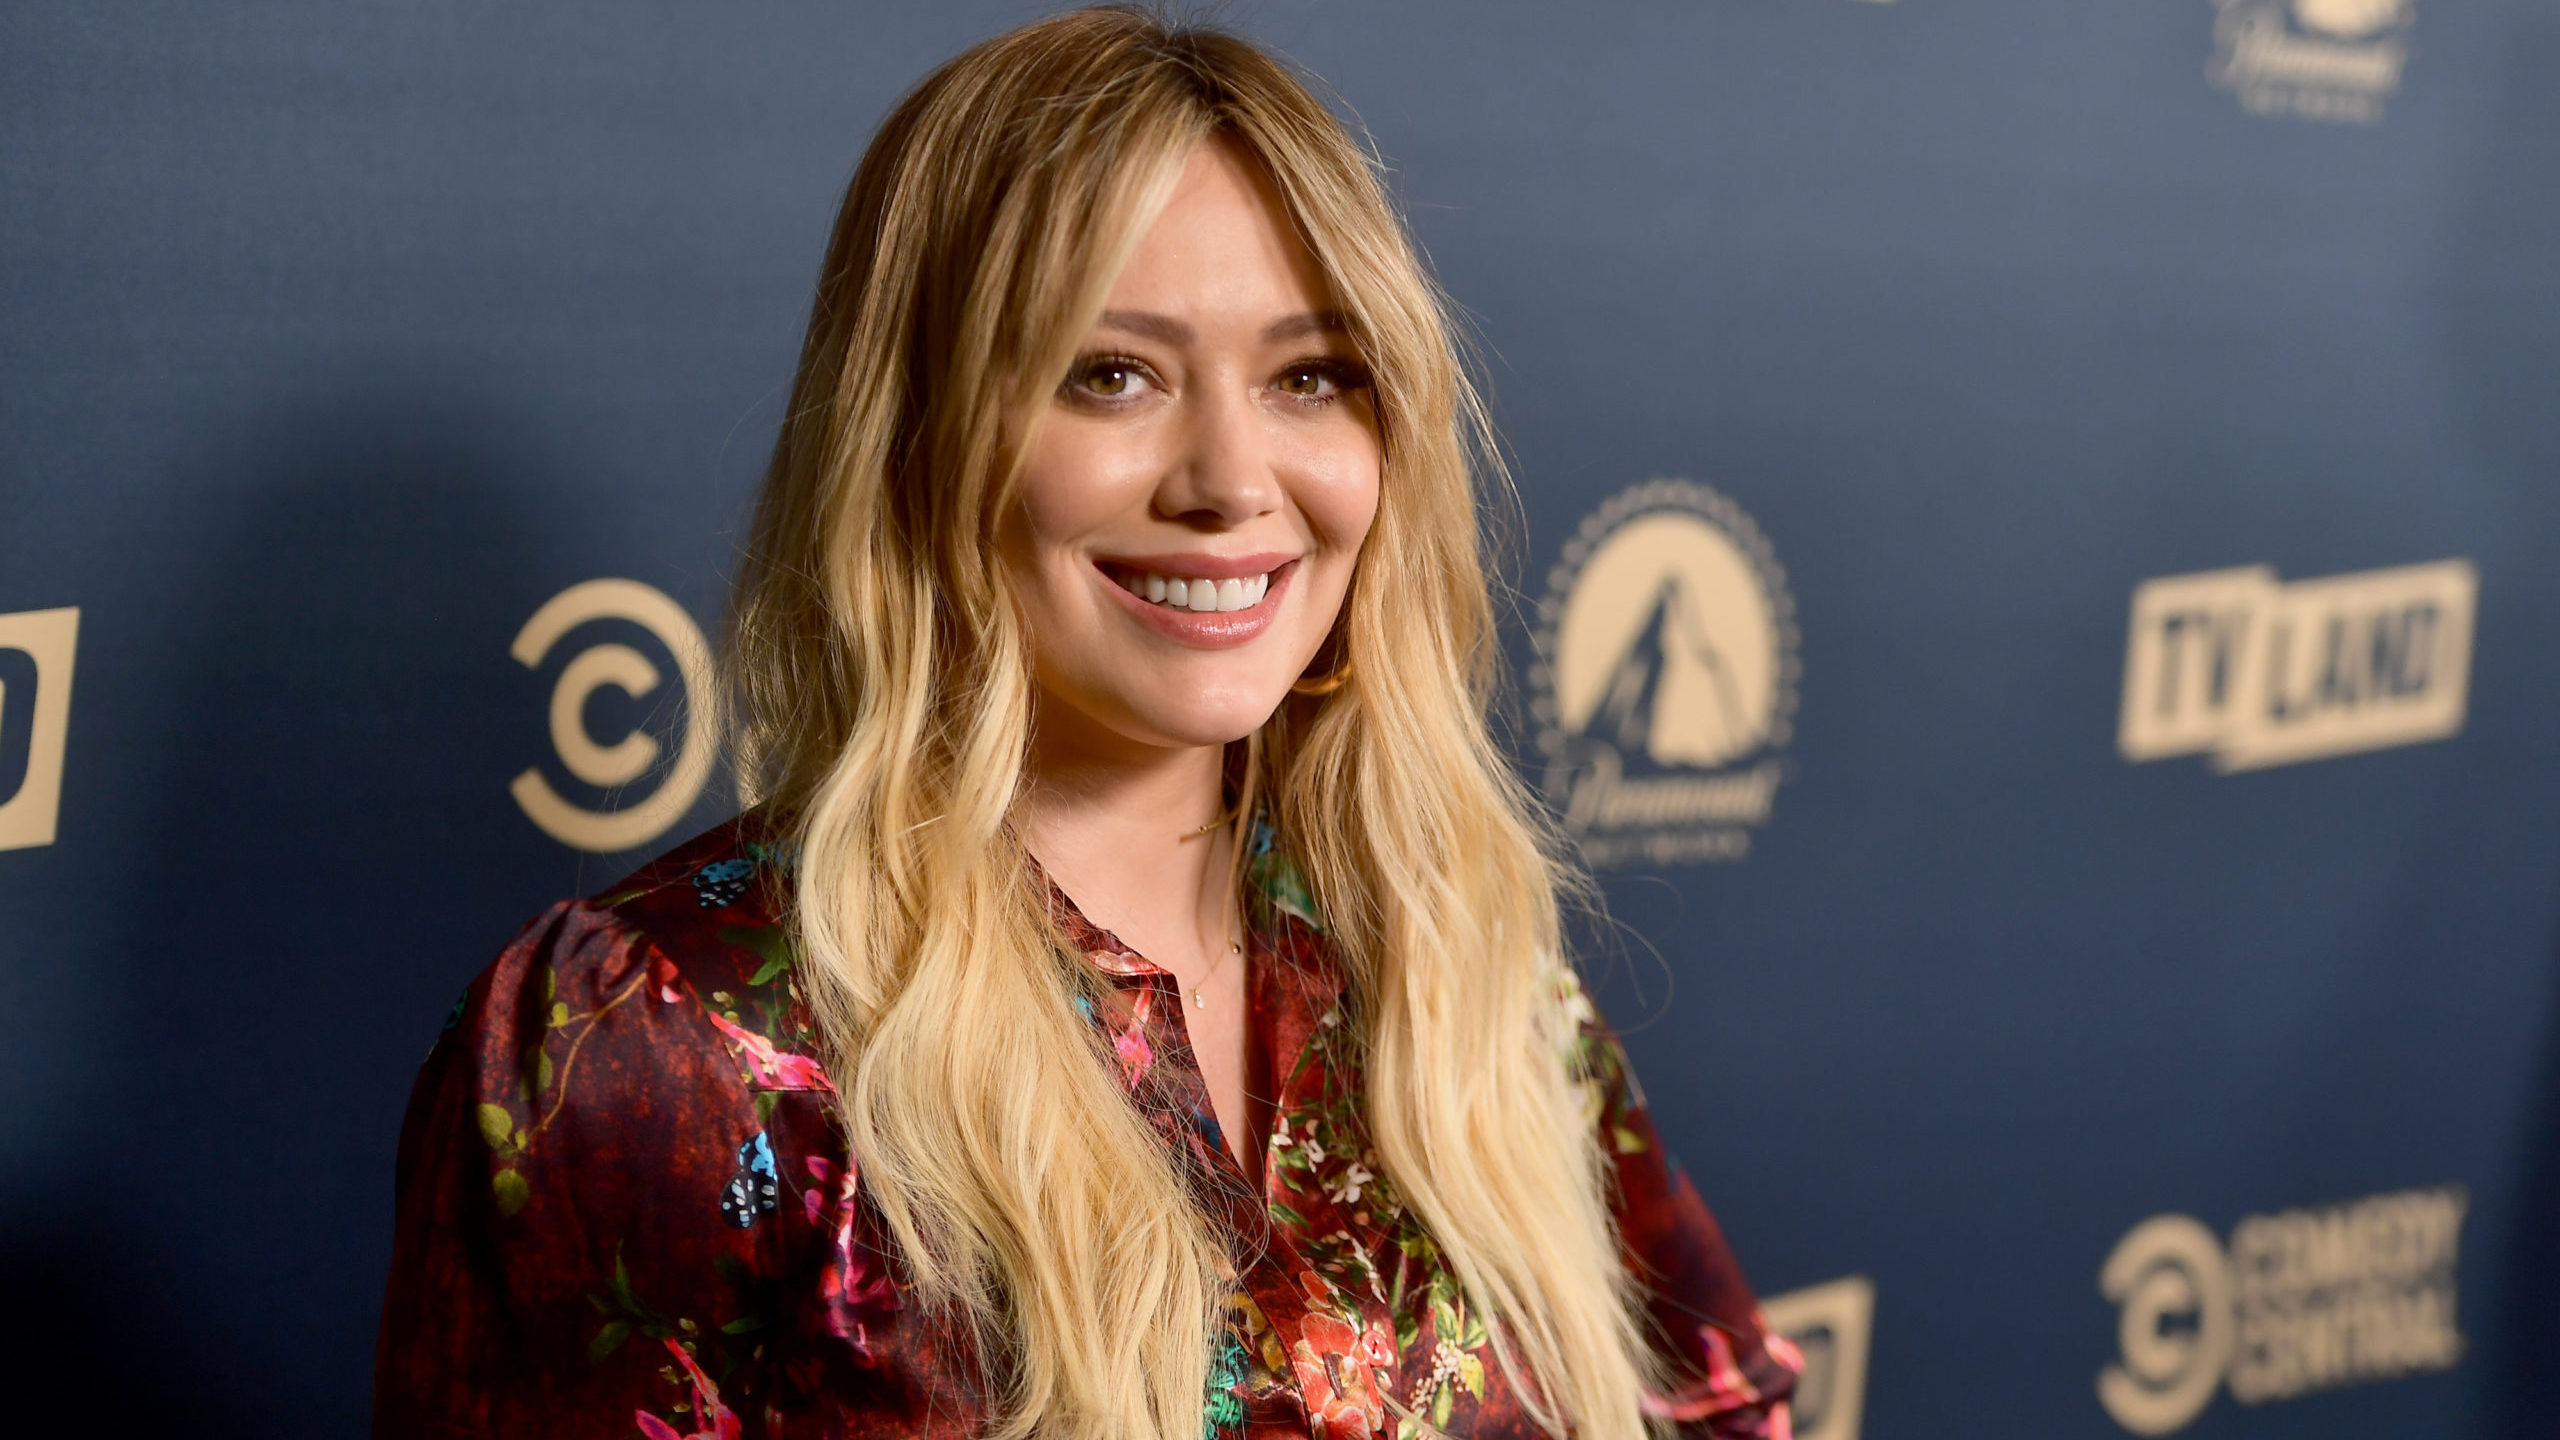 Hilary Duff, Hulu, How I Met Your Father